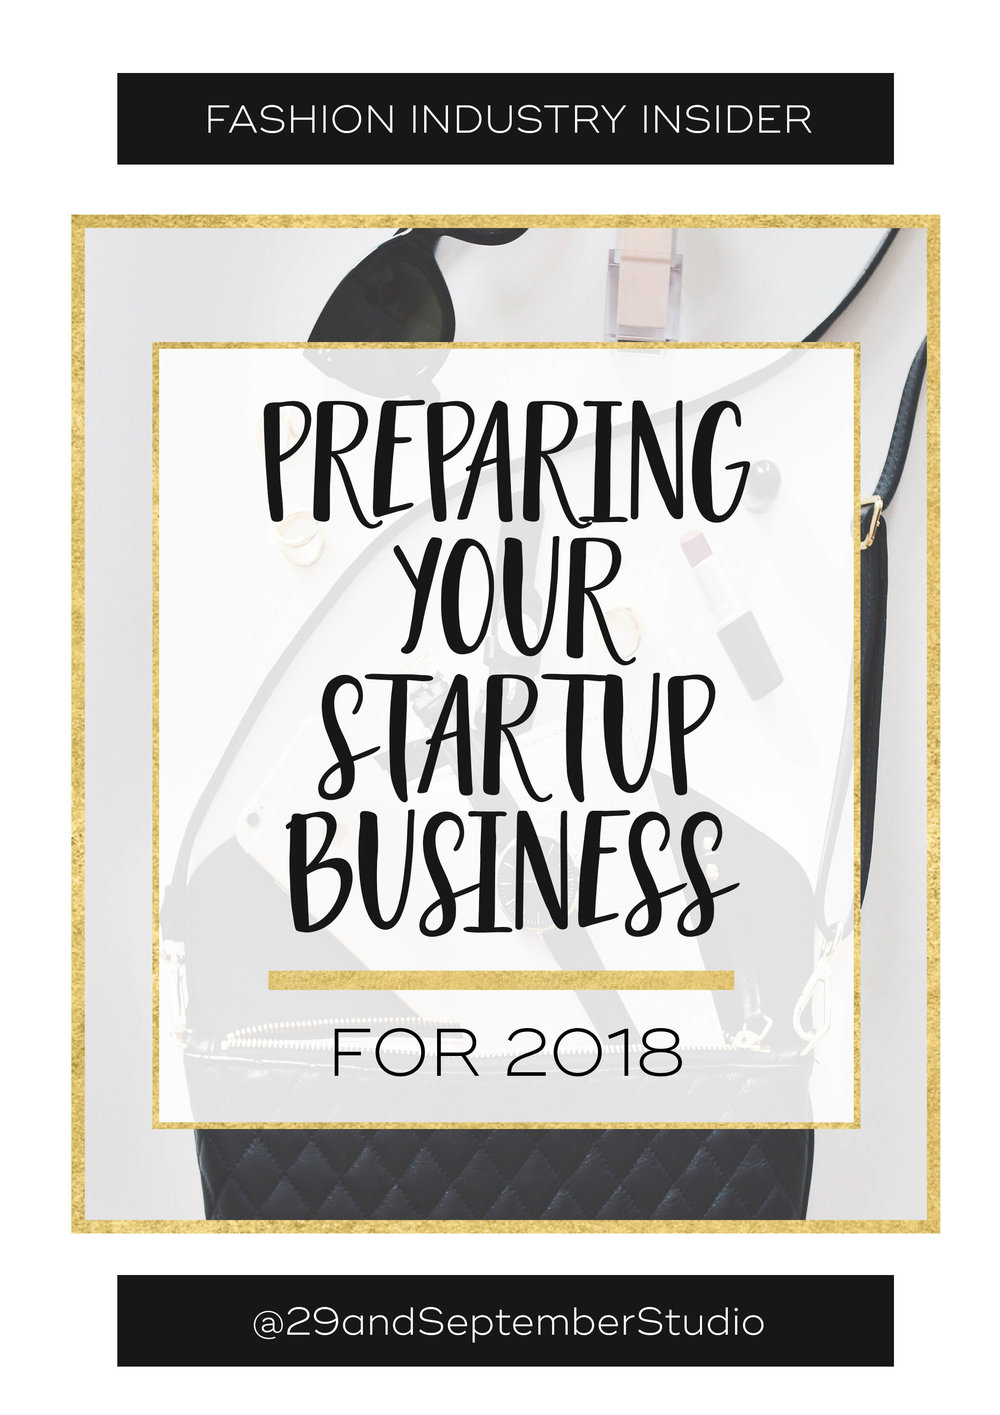 How to prepare to start a fashion business in 2018 | fashion designing business plan | how to start a clothing line from scratch